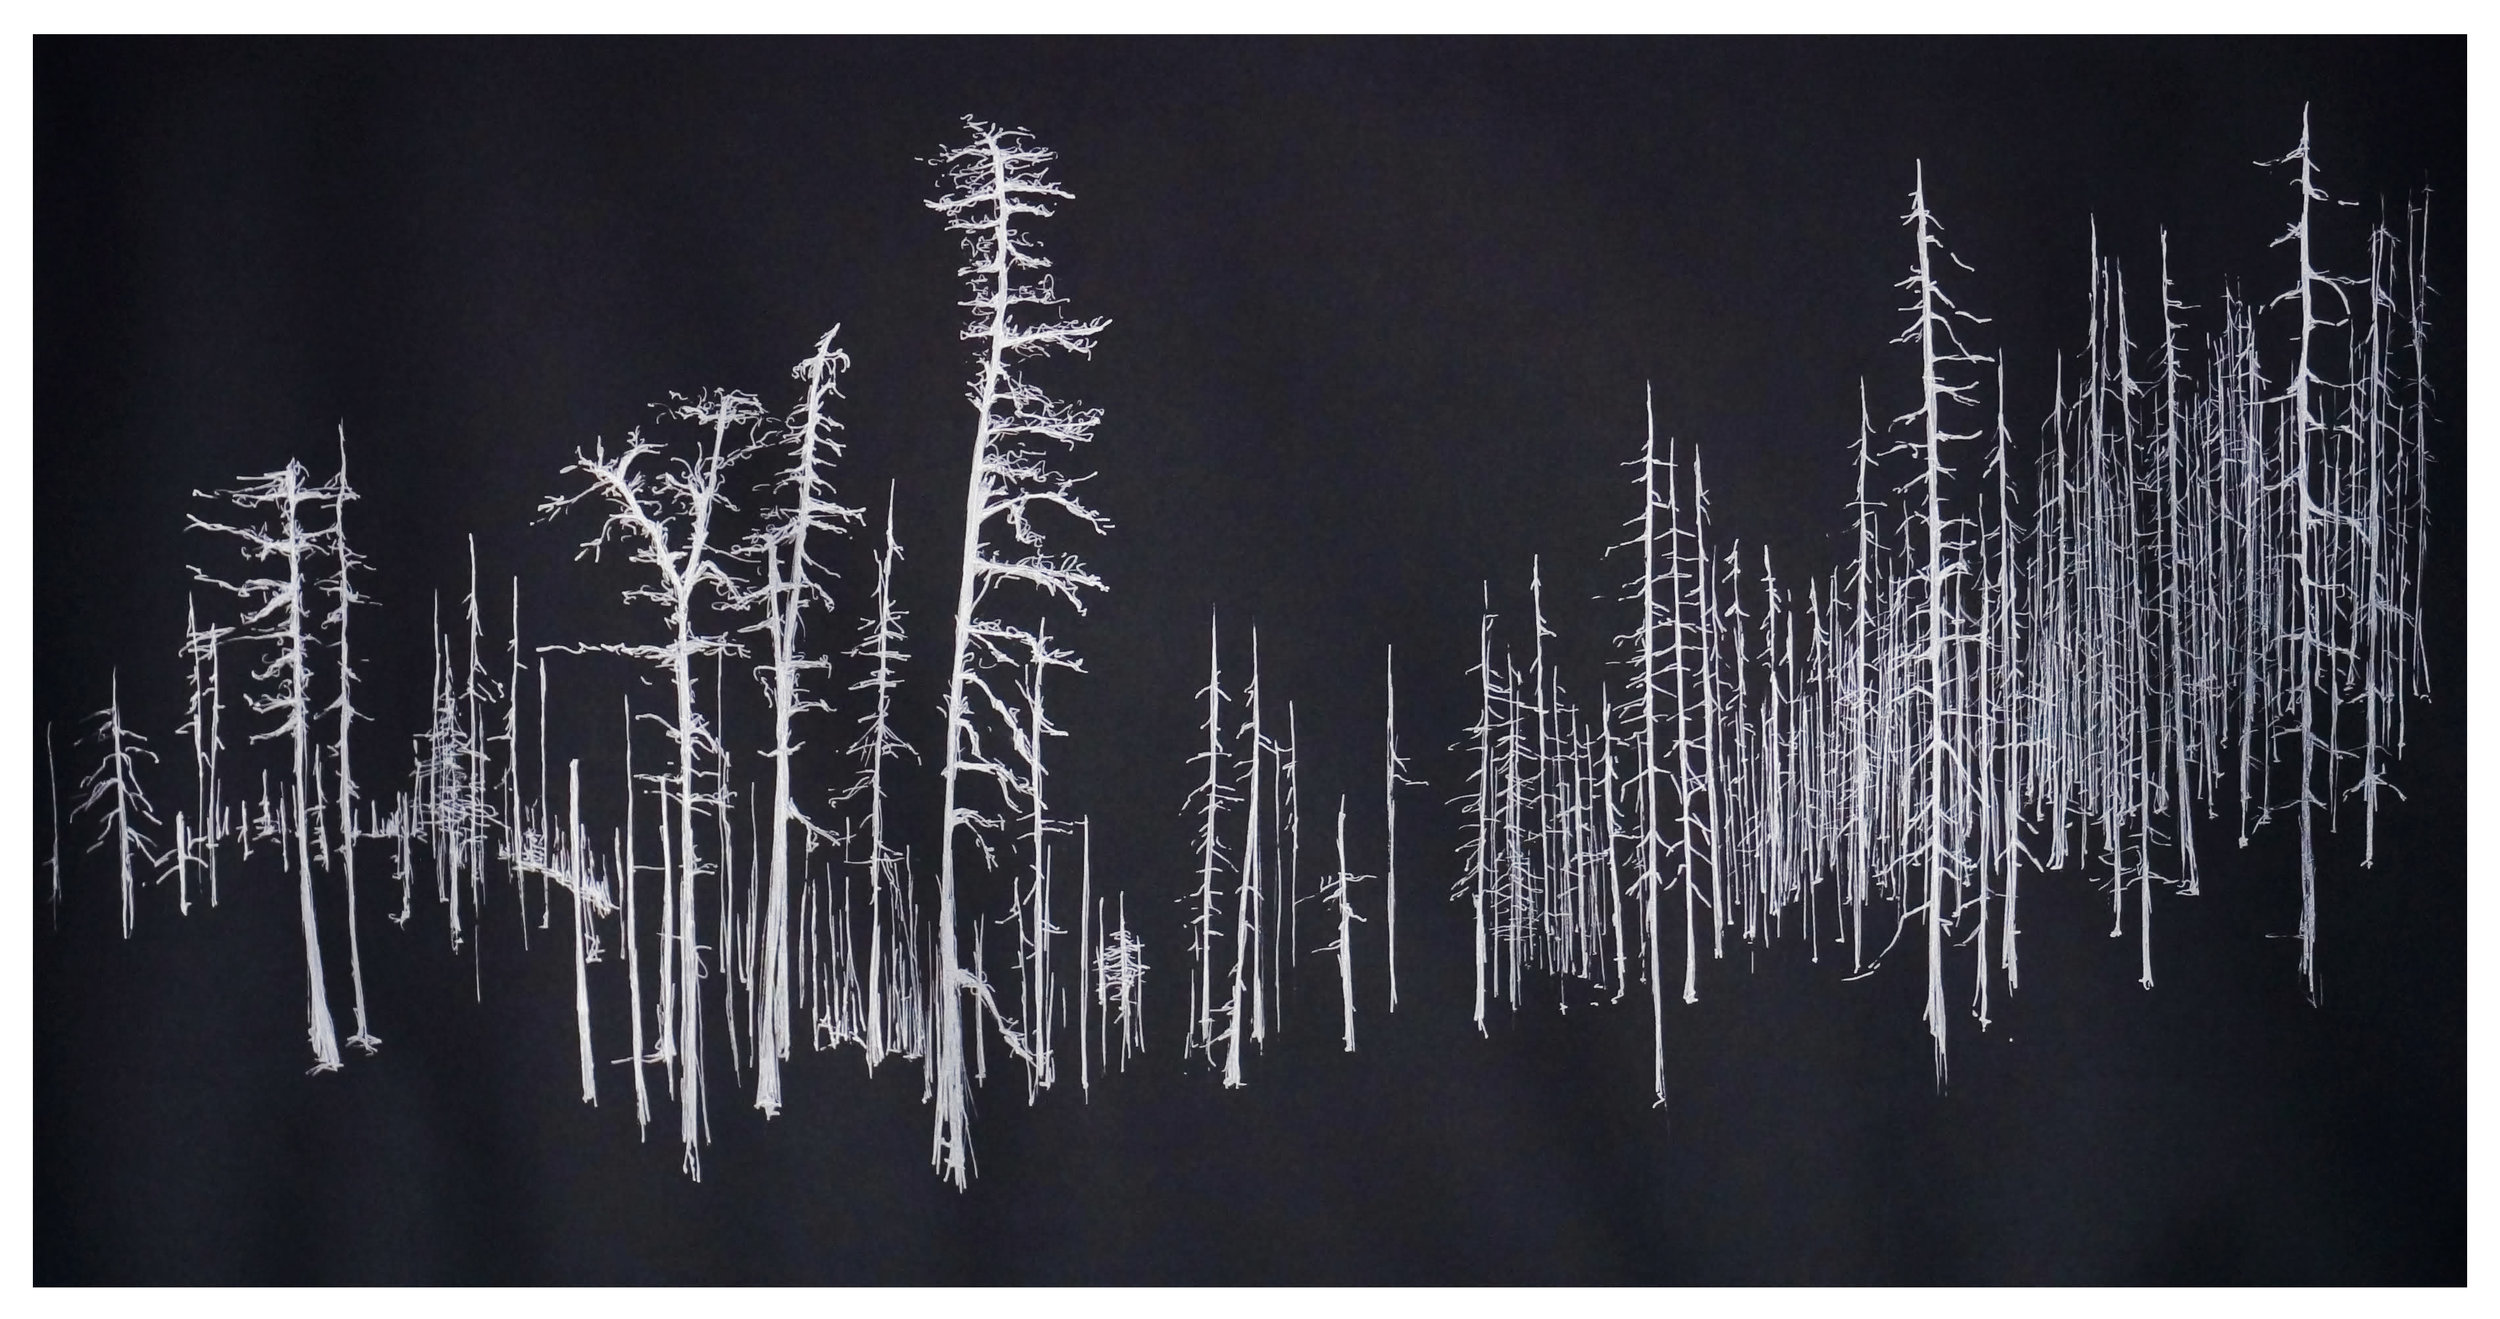 Helen Dennis   Sea of Trees   2019  Silver pen on grey paper  Signed by the artist in pencil, lower right  30 x 60 inches